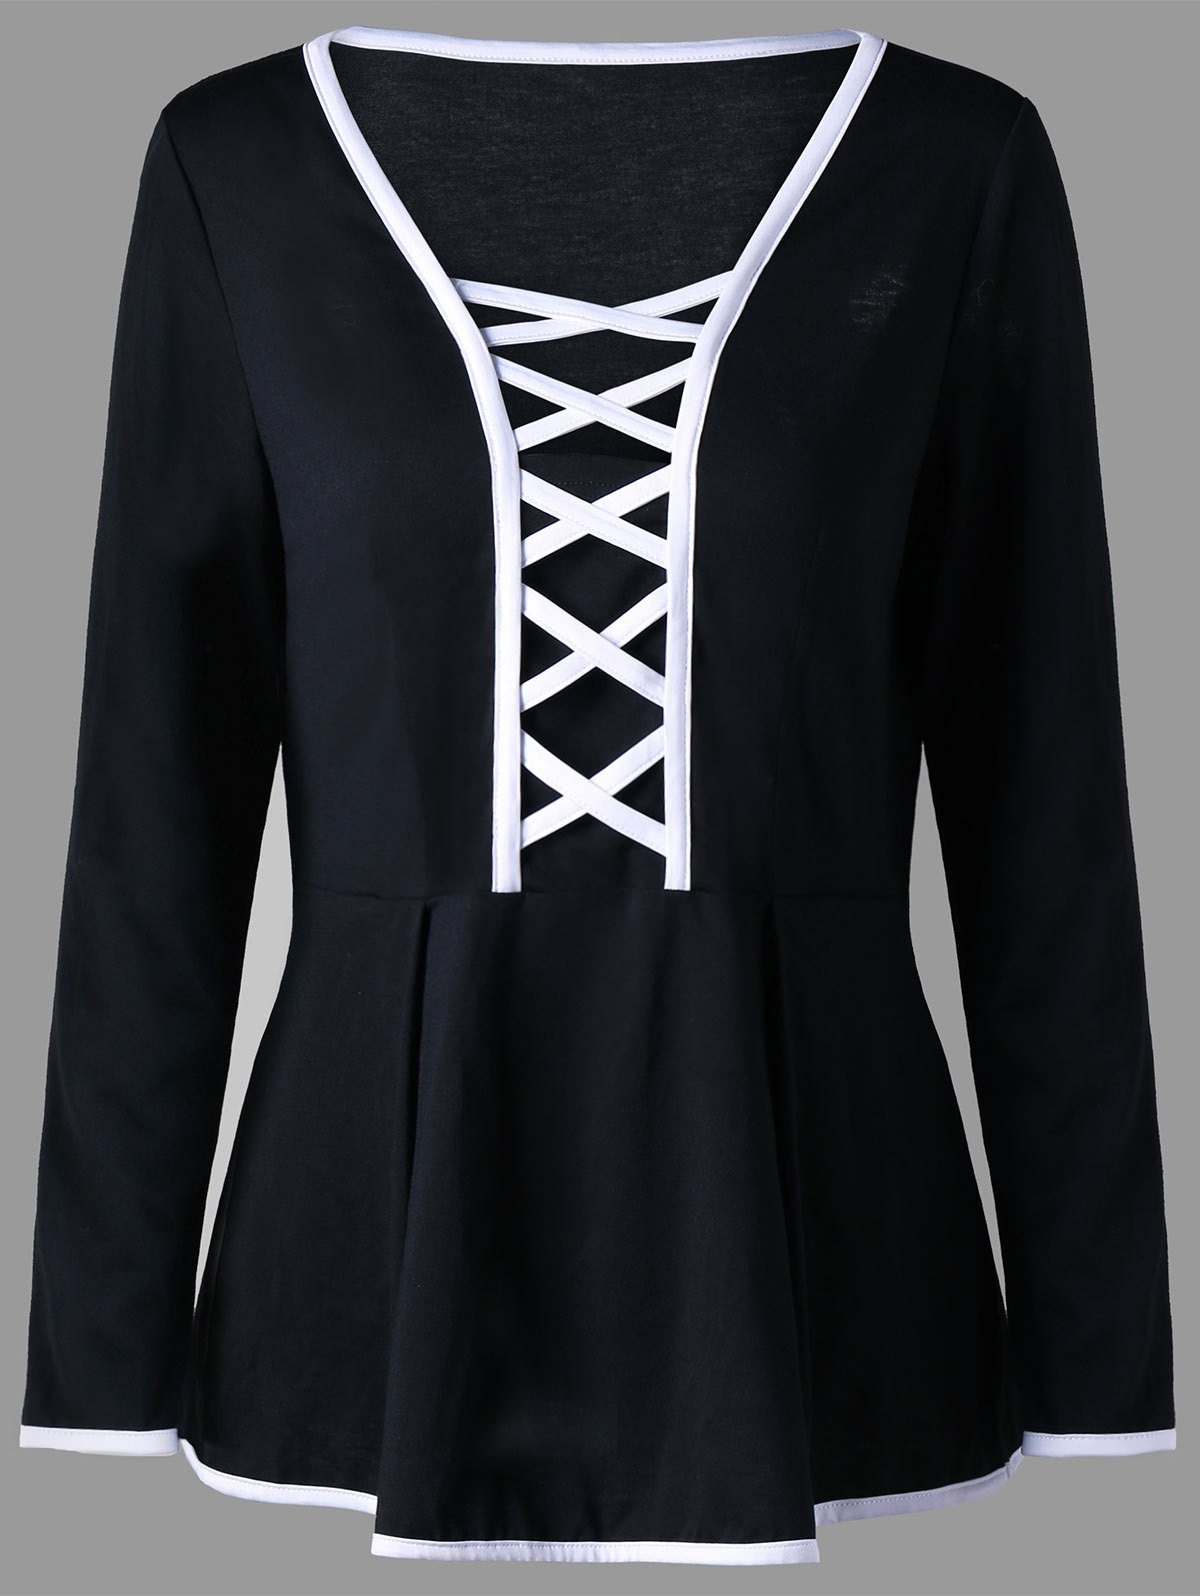 Plus Size Criss Cross Long Sleeve Peplum TopWOMEN<br><br>Size: 3XL; Color: BLACK; Material: Polyester,Spandex; Shirt Length: Regular; Sleeve Length: Full; Collar: V-Neck; Style: Fashion; Season: Fall,Spring; Pattern Type: Solid; Weight: 0.2700kg; Package Contents: 1 x Top;